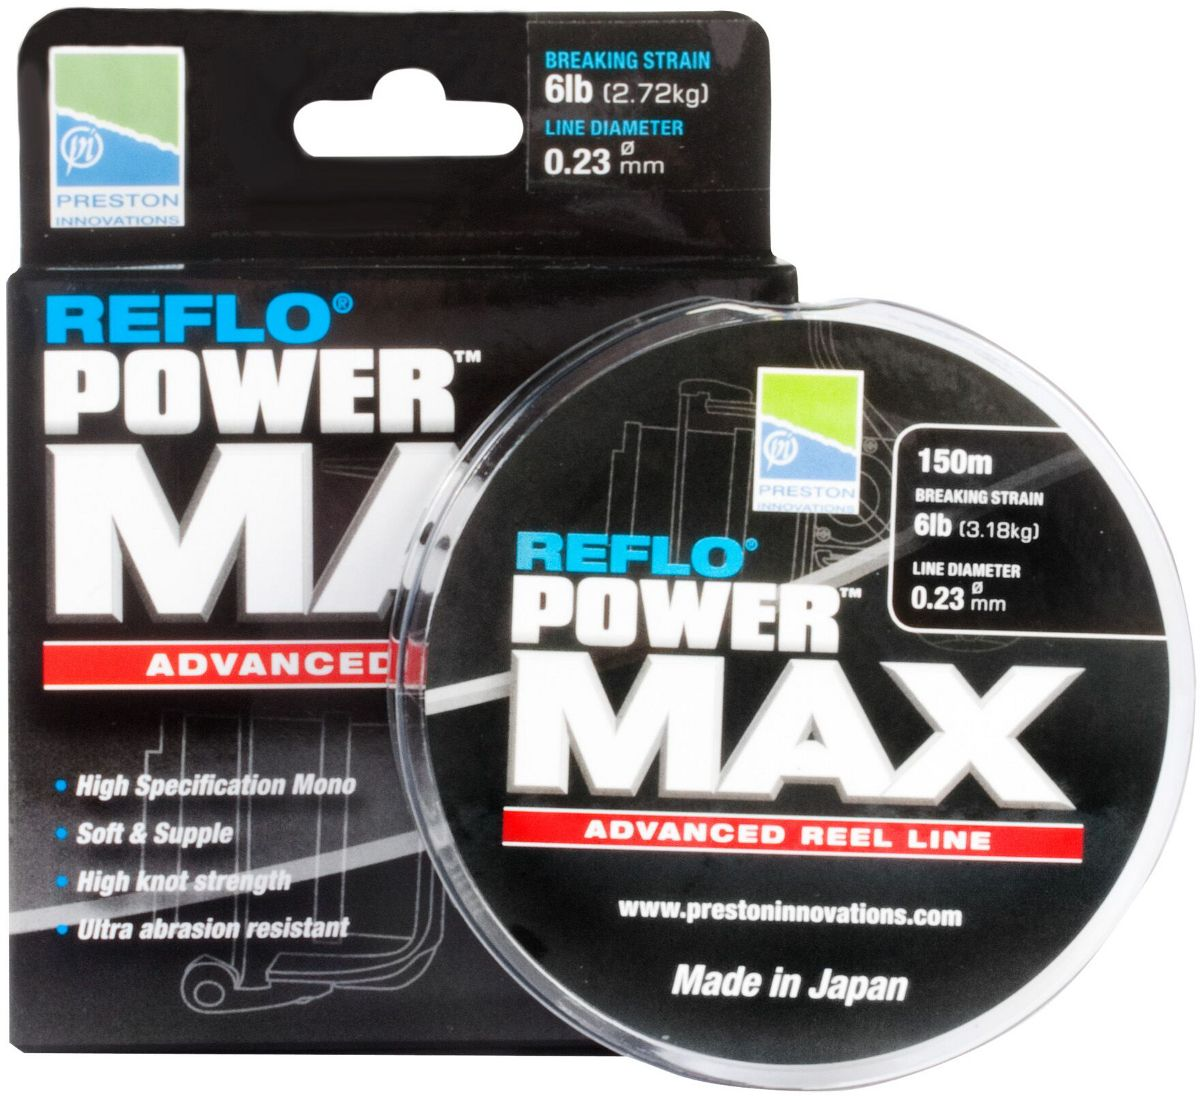 Леска Preston Innovations REFLO® POWER MAX - 150m  0.26mm / 3.63kg